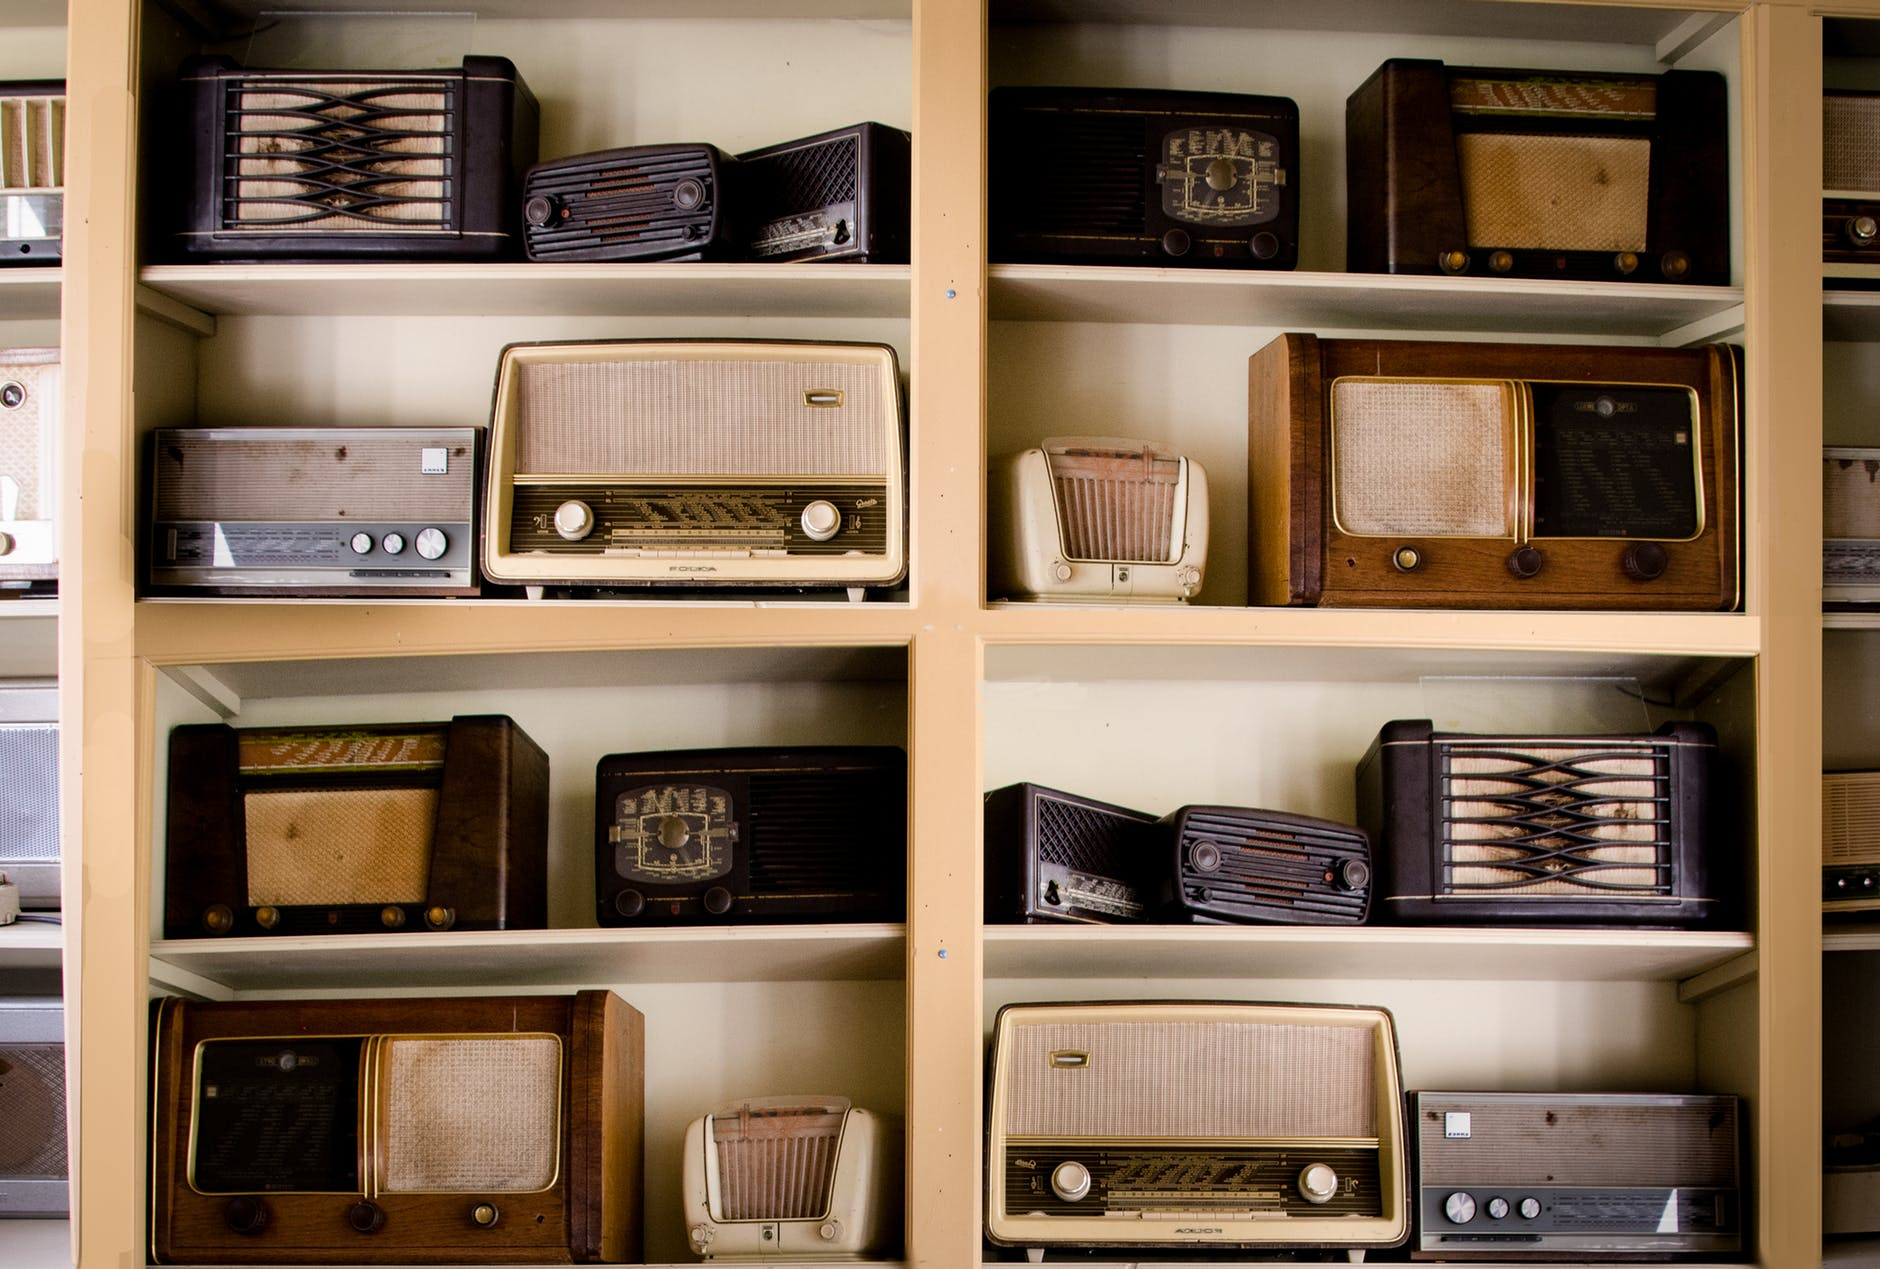 All you need to know about tabletop radios